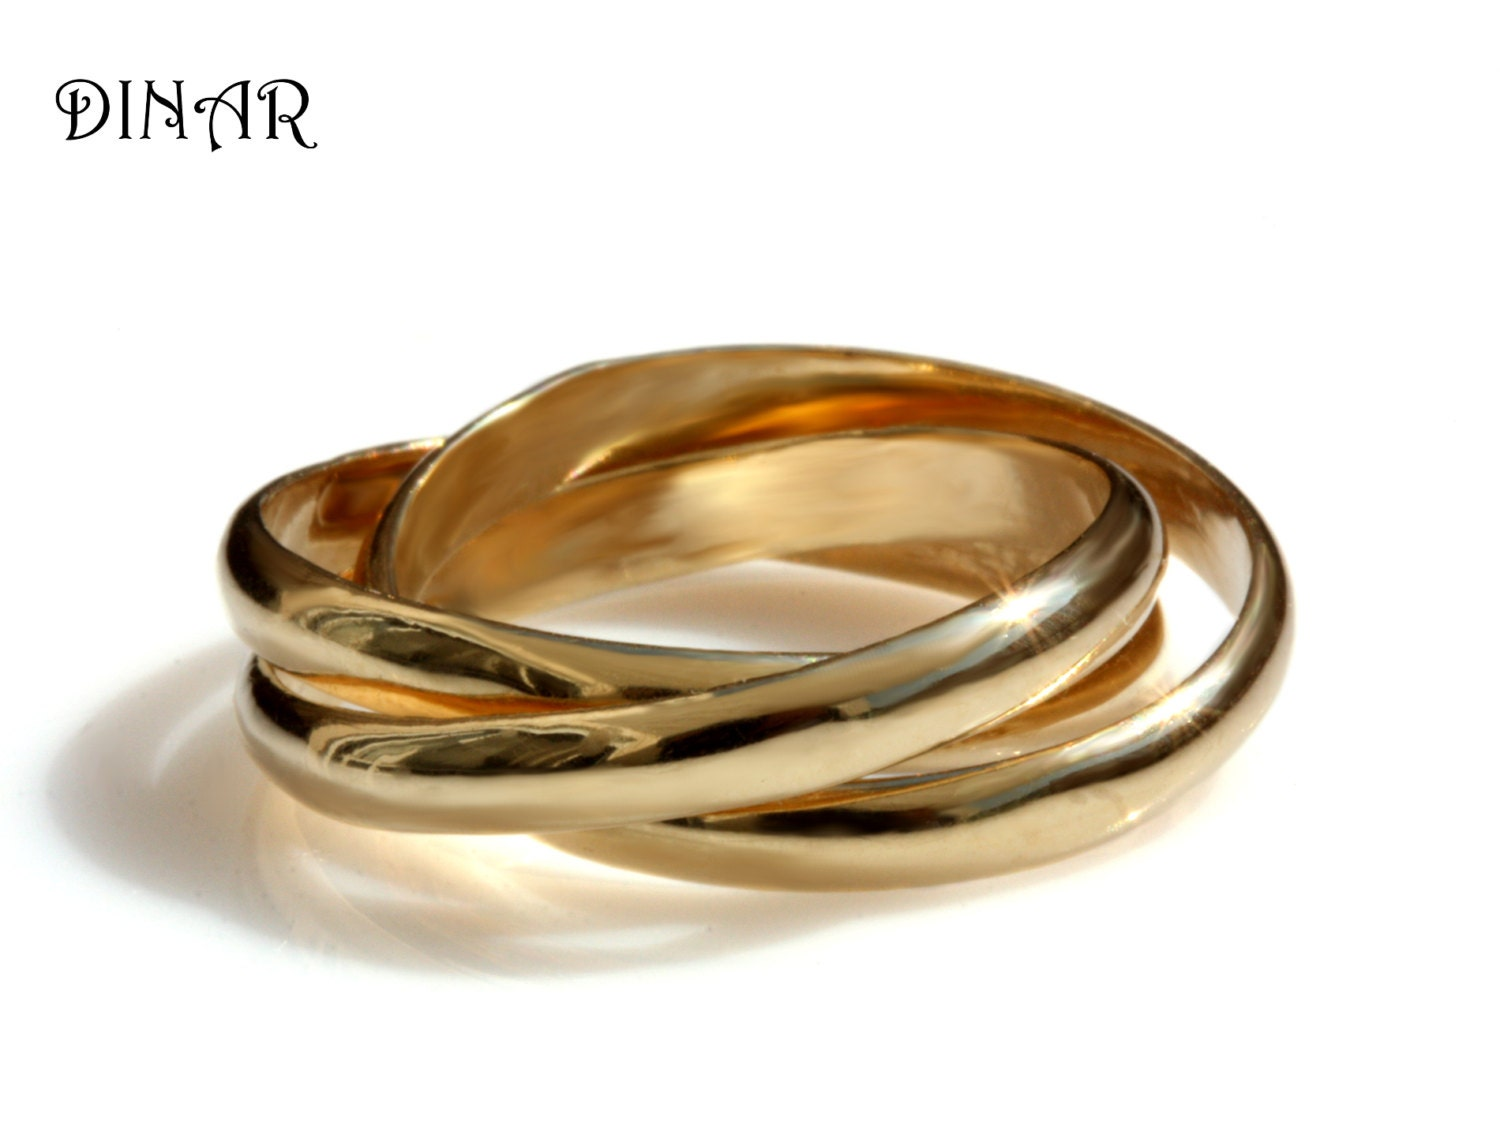 russian wedding ring russian wedding ring trinity wedding band Intertwined rolling ring Three 3mm wide Half Round Bands 14k wedding band solid gold bands Russian Wedding Band